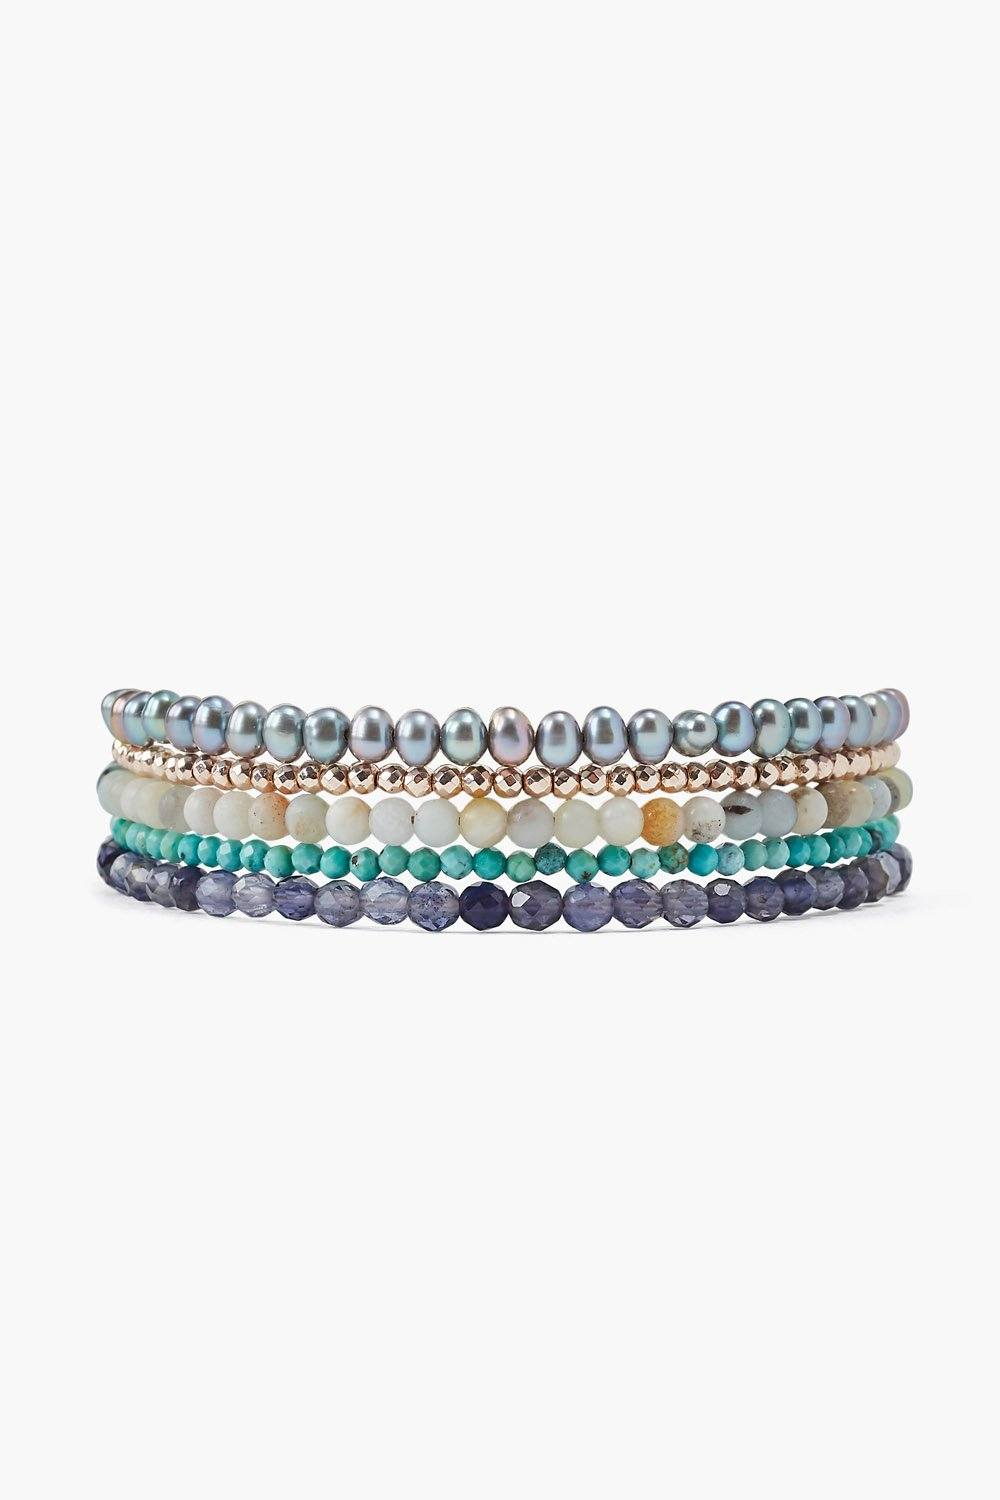 Iolite and Turquoise Mix Naked Wrap Bracelet